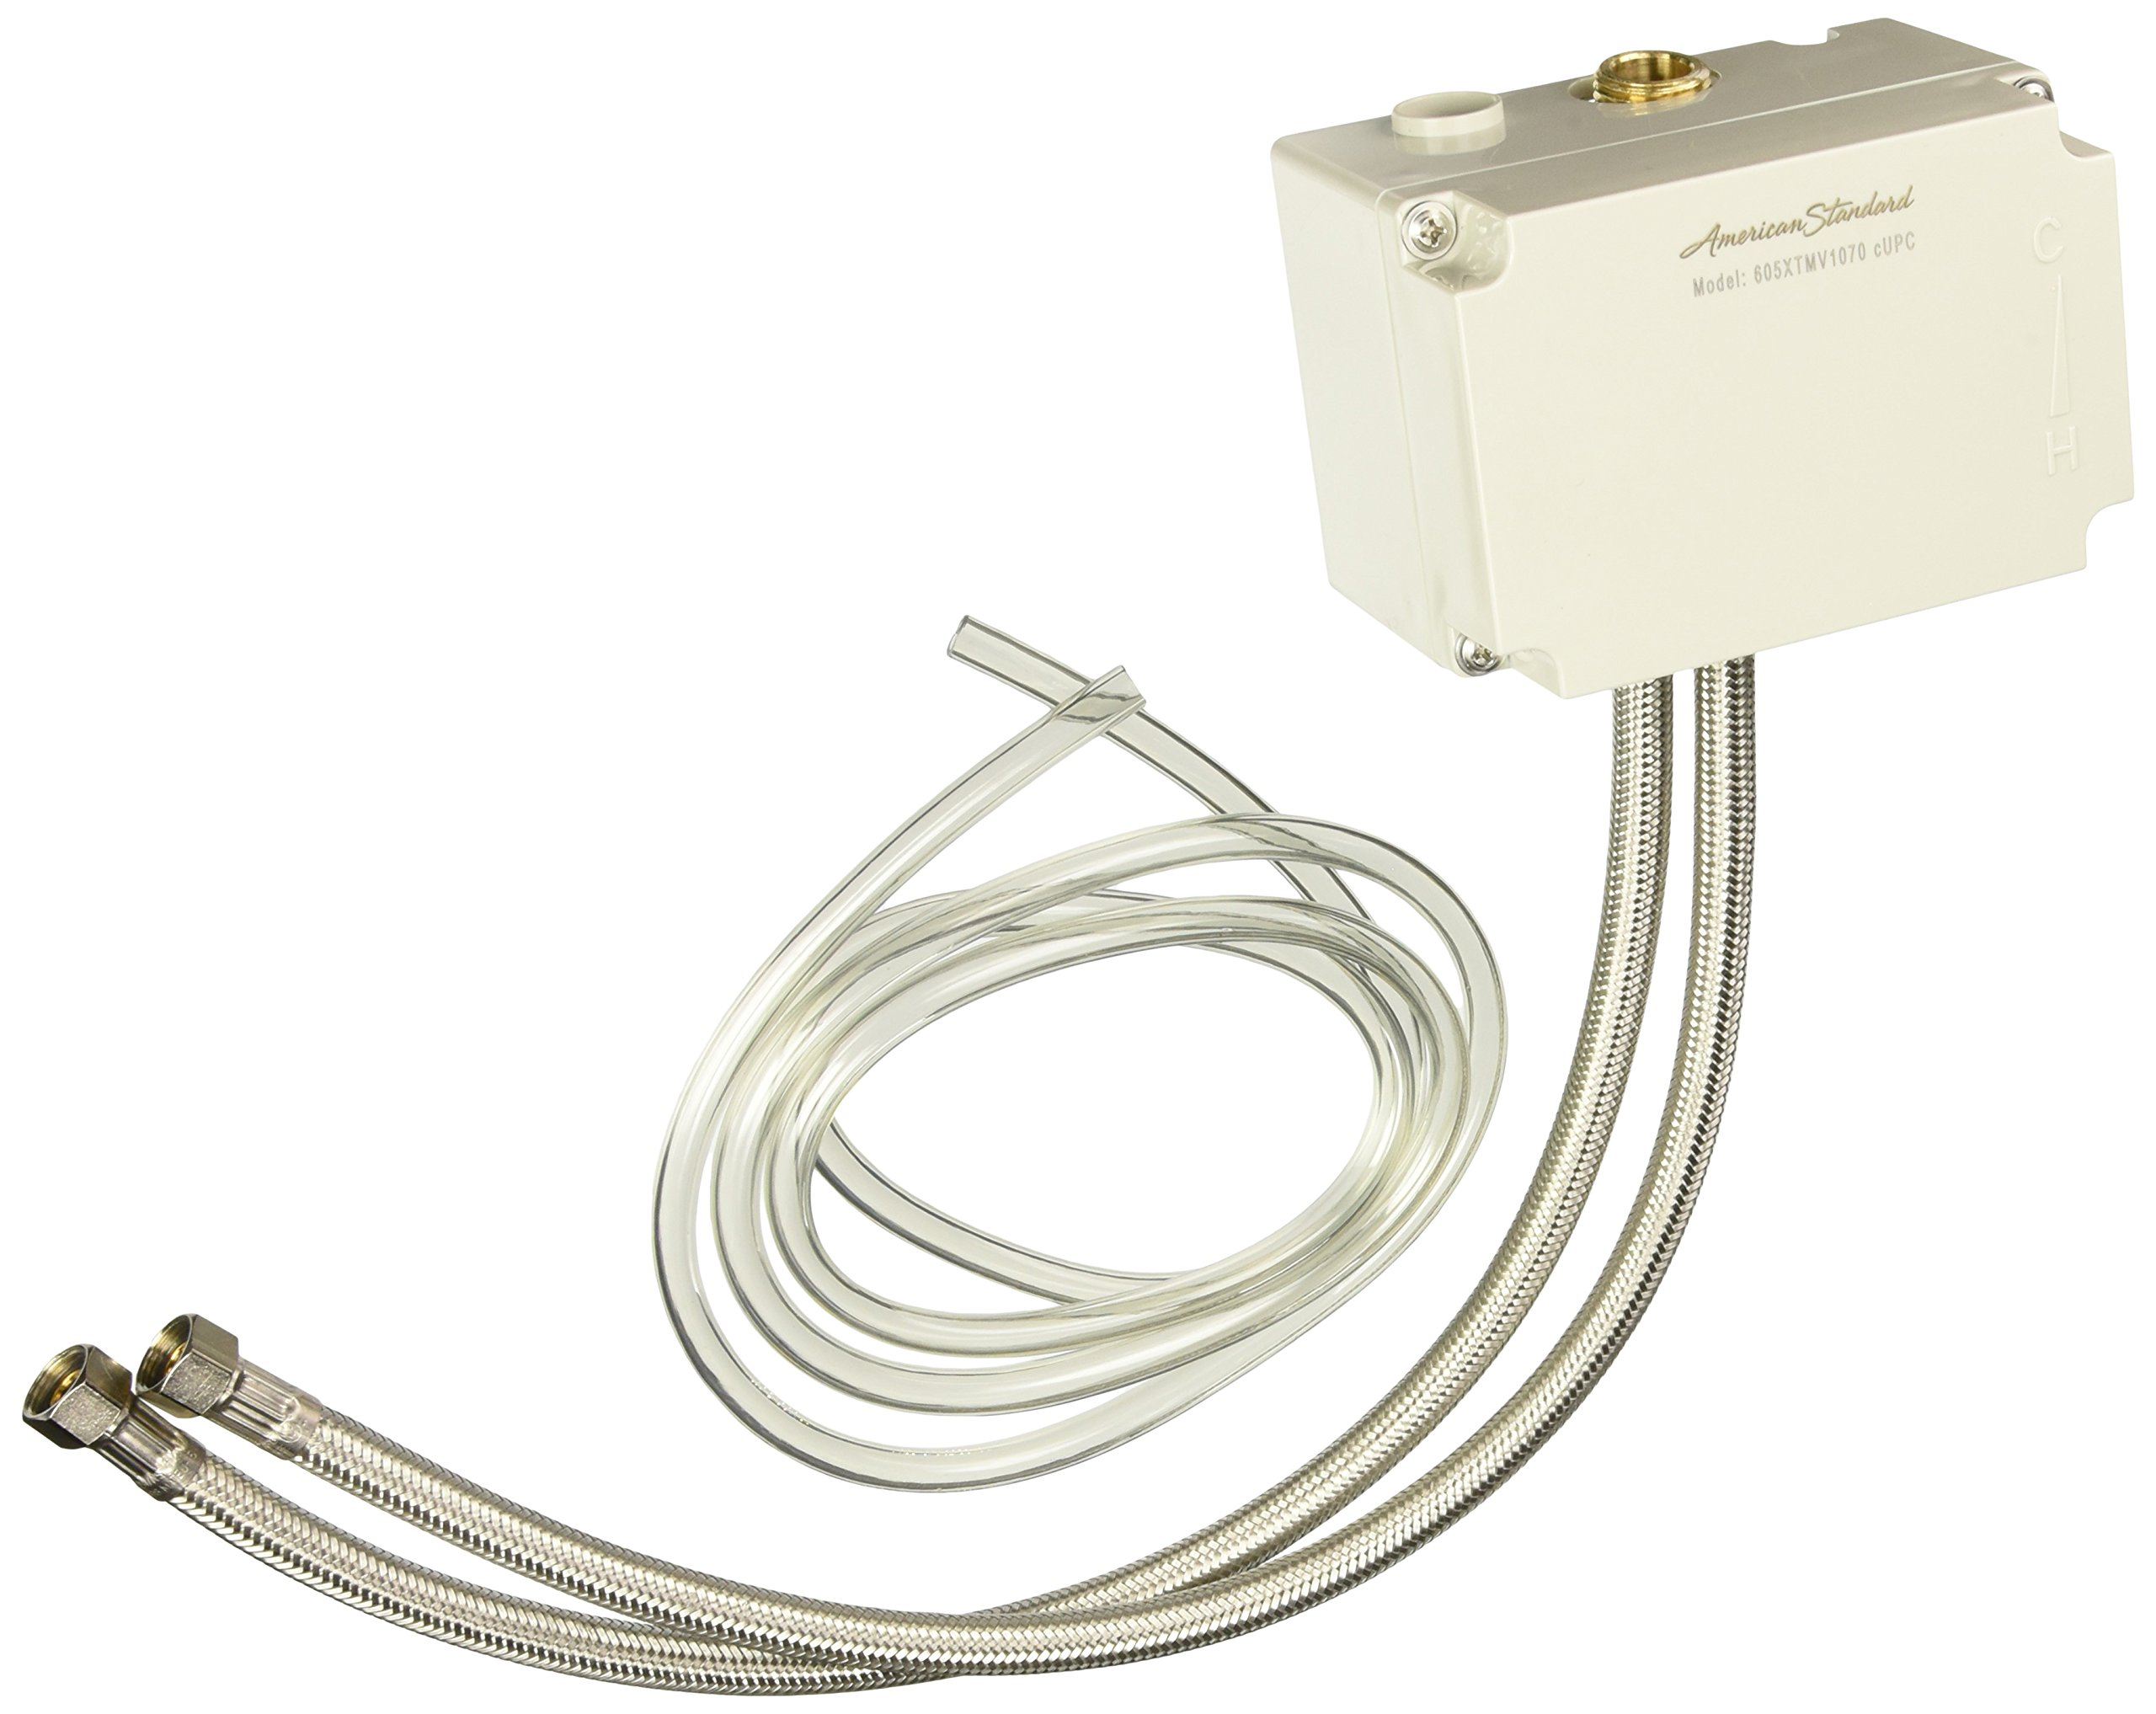 American Standard 605XTMV1070 Selectronic Thermostatic Mixing Valve, Small